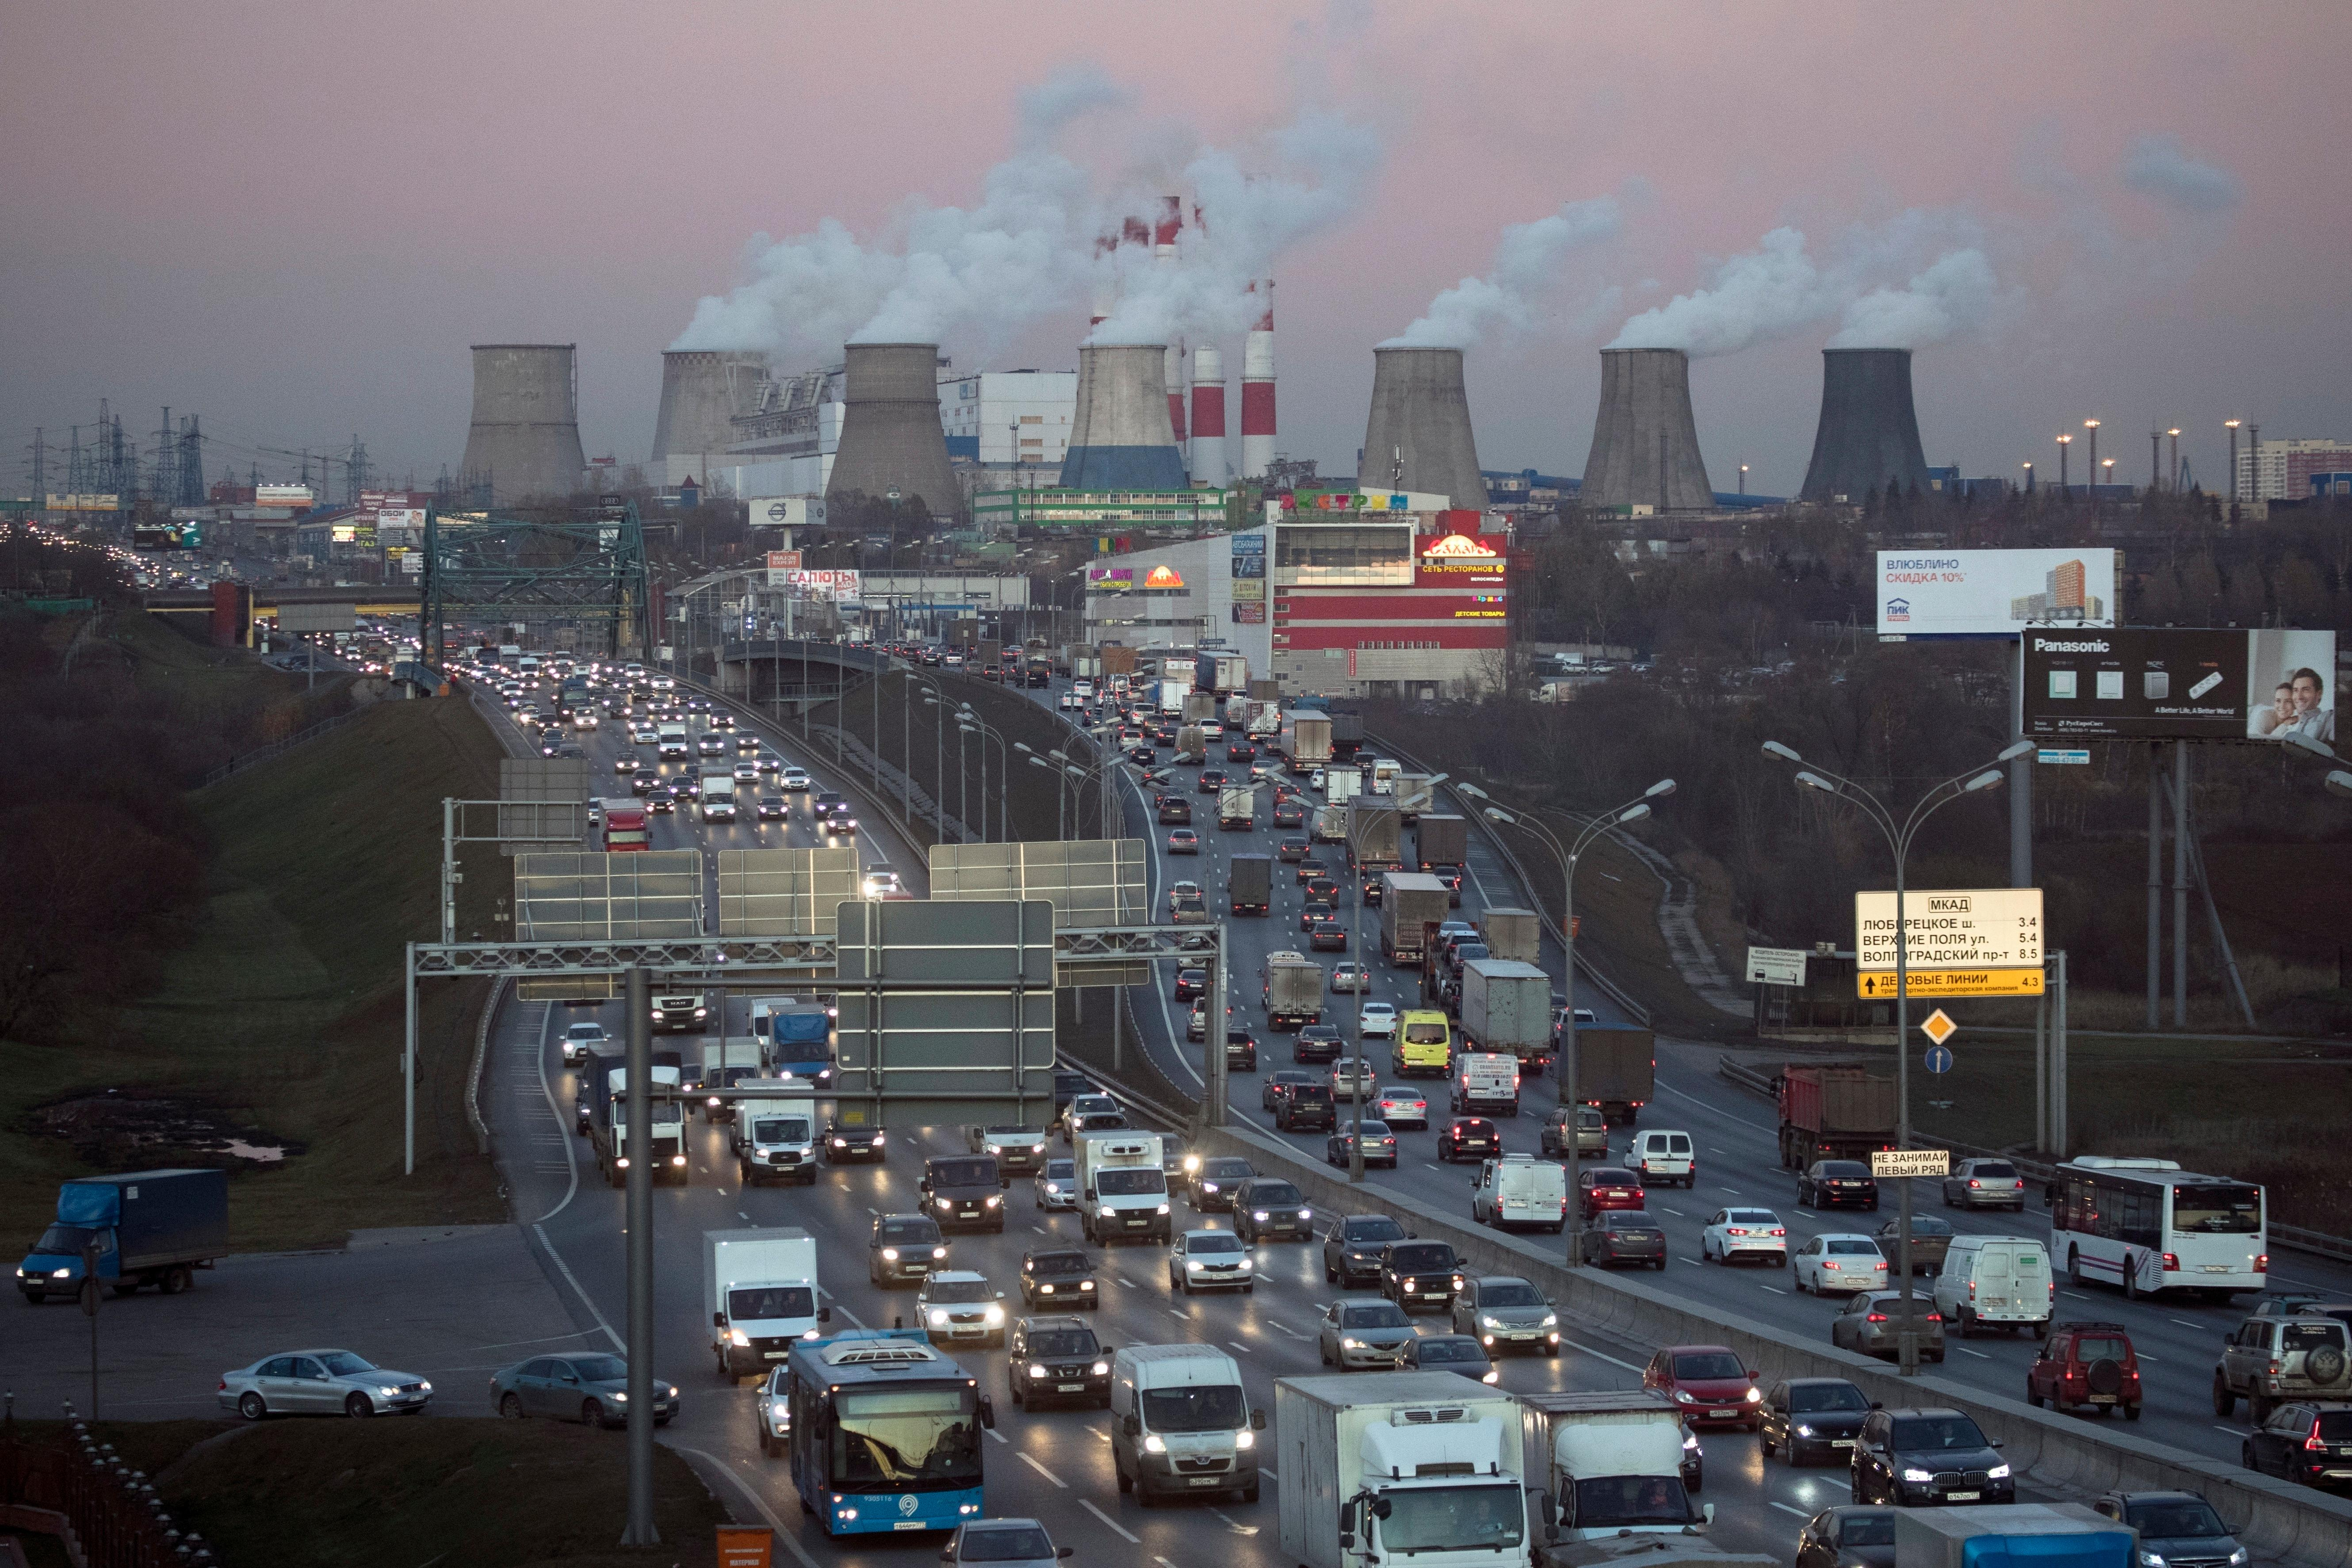 FILE - In this Nov. 8, 2017 file photo traffic crowds a road in Moscow, Russia after a sunset as smoke billows from a power plant in background. The COP 23 Fiji UN Climate Change Conference in Bonn, Germany, is scheduled to end Friday, Nov. 17 and aims at producing draft rules for implementing the Paris accord. . (AP Photo/Pavel Glolovkin, file)